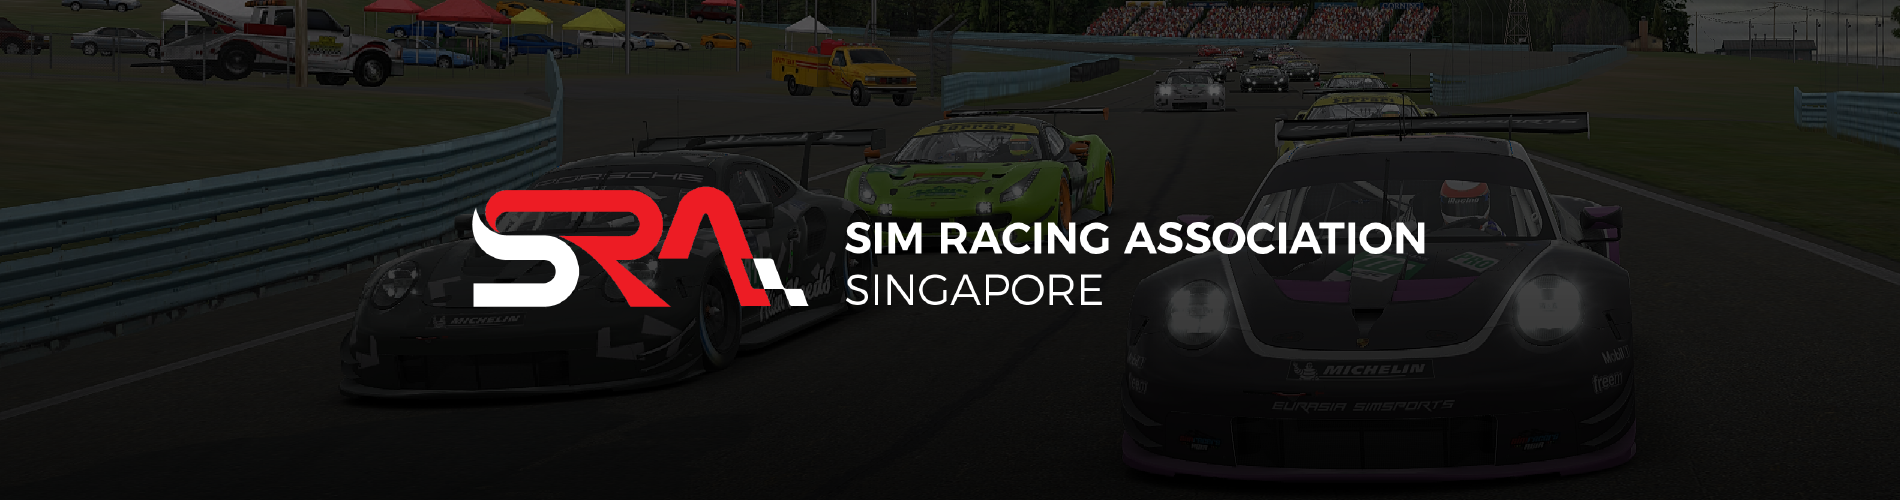 Sim Racing Association (Singapore)